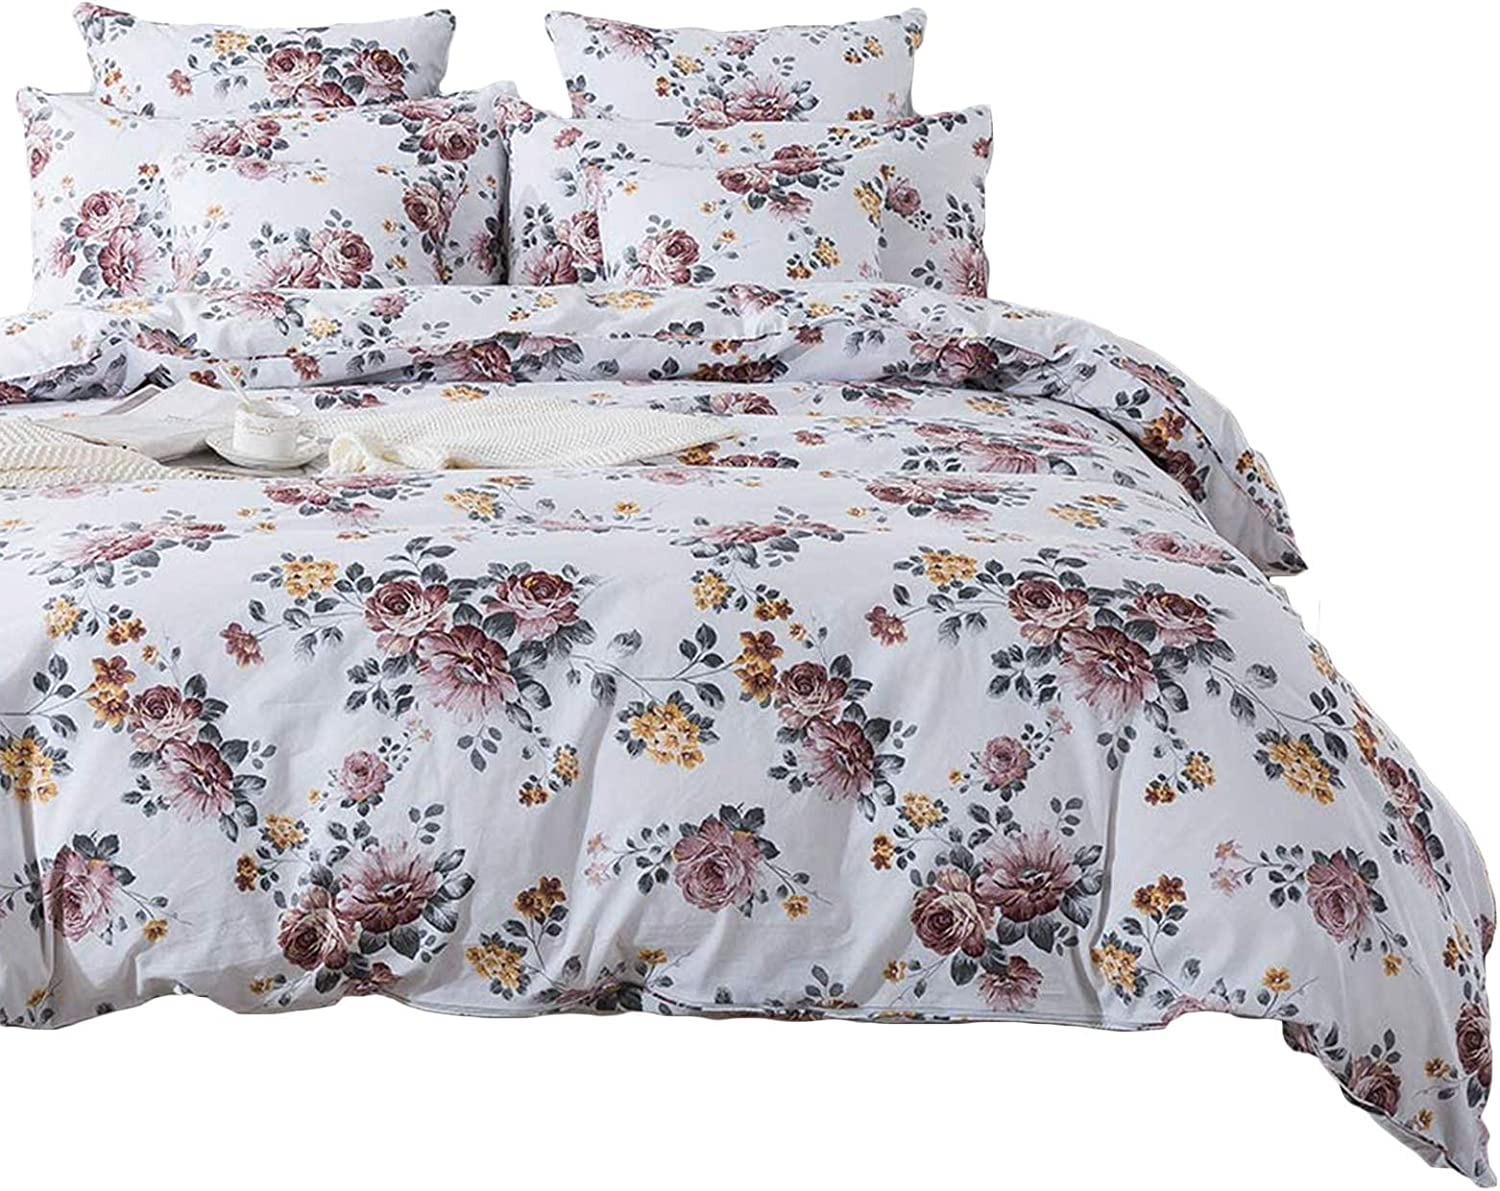 FADFAY Duvet Cover Set Queen Elegant White Floral Farmhouse Bedding 100% Brushed Cotton Super Soft Hypoallergenic Comforter Cover Set with Zipper Closure 3Pcs, 1duvet Cover & 2pillowcases, Queen Size